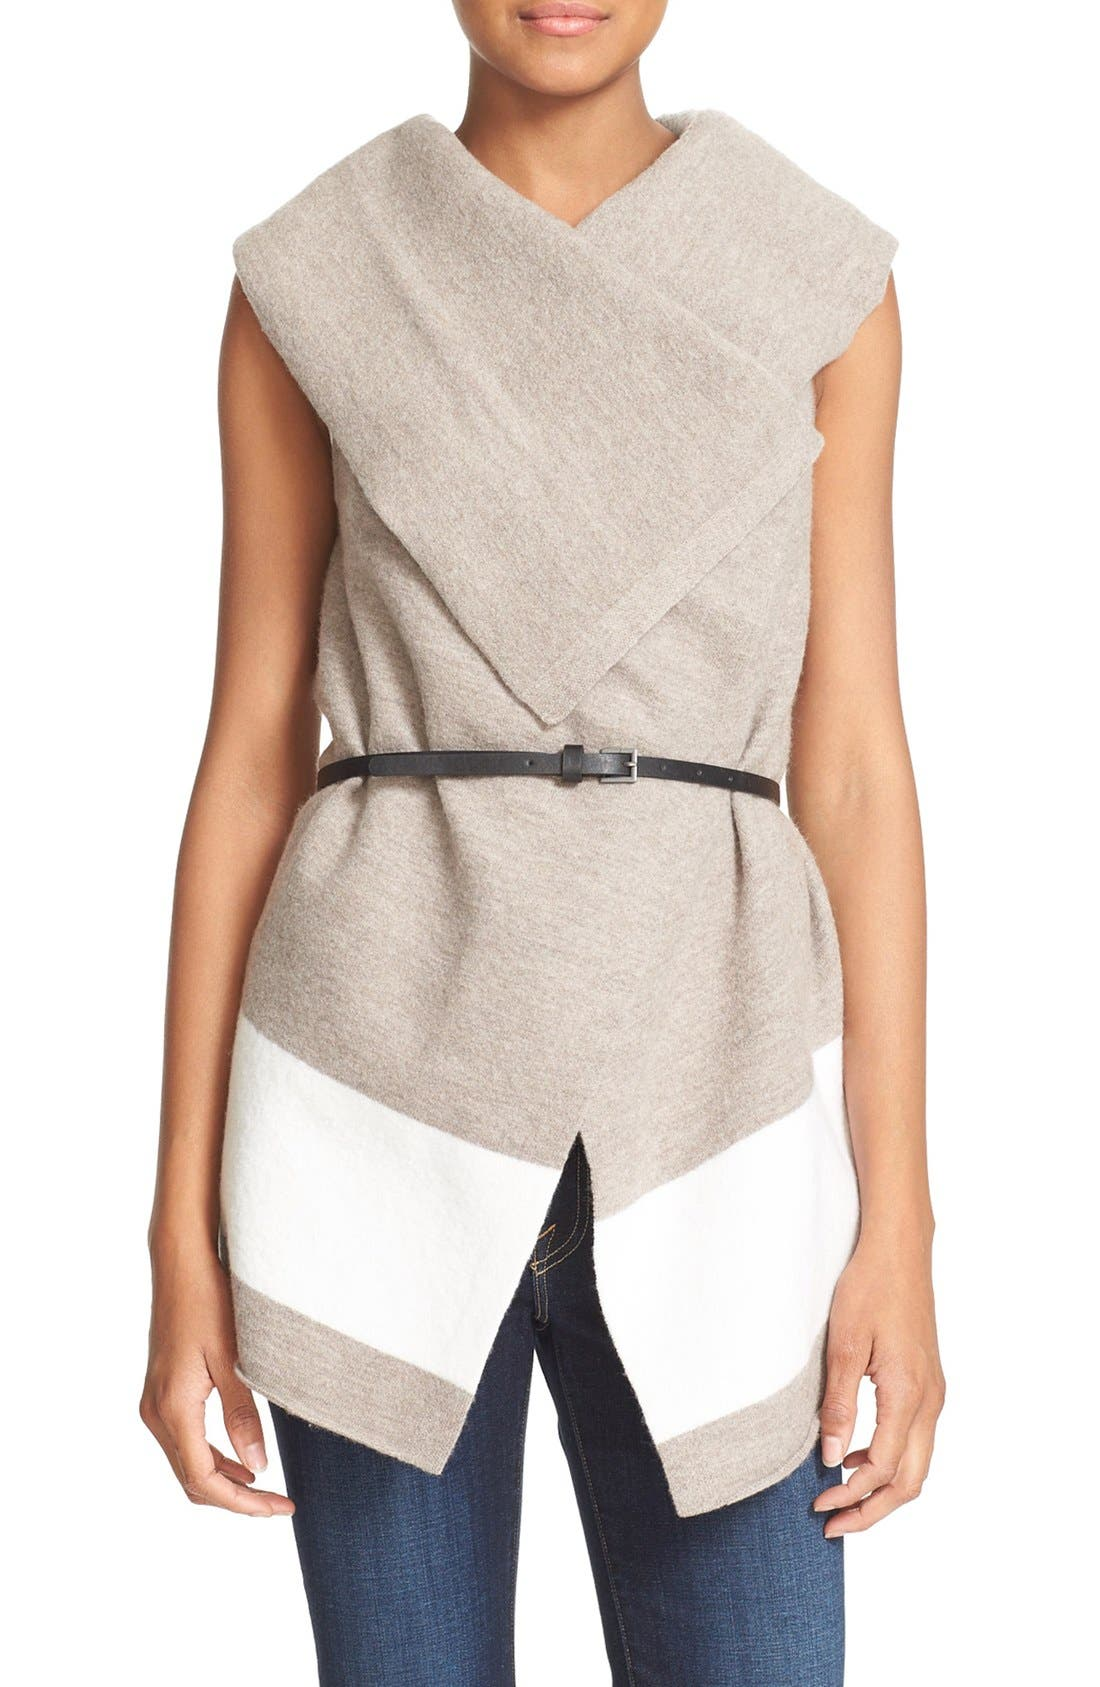 JOIE 'Ligiere' Sleeveless Boiled Wool Sweater